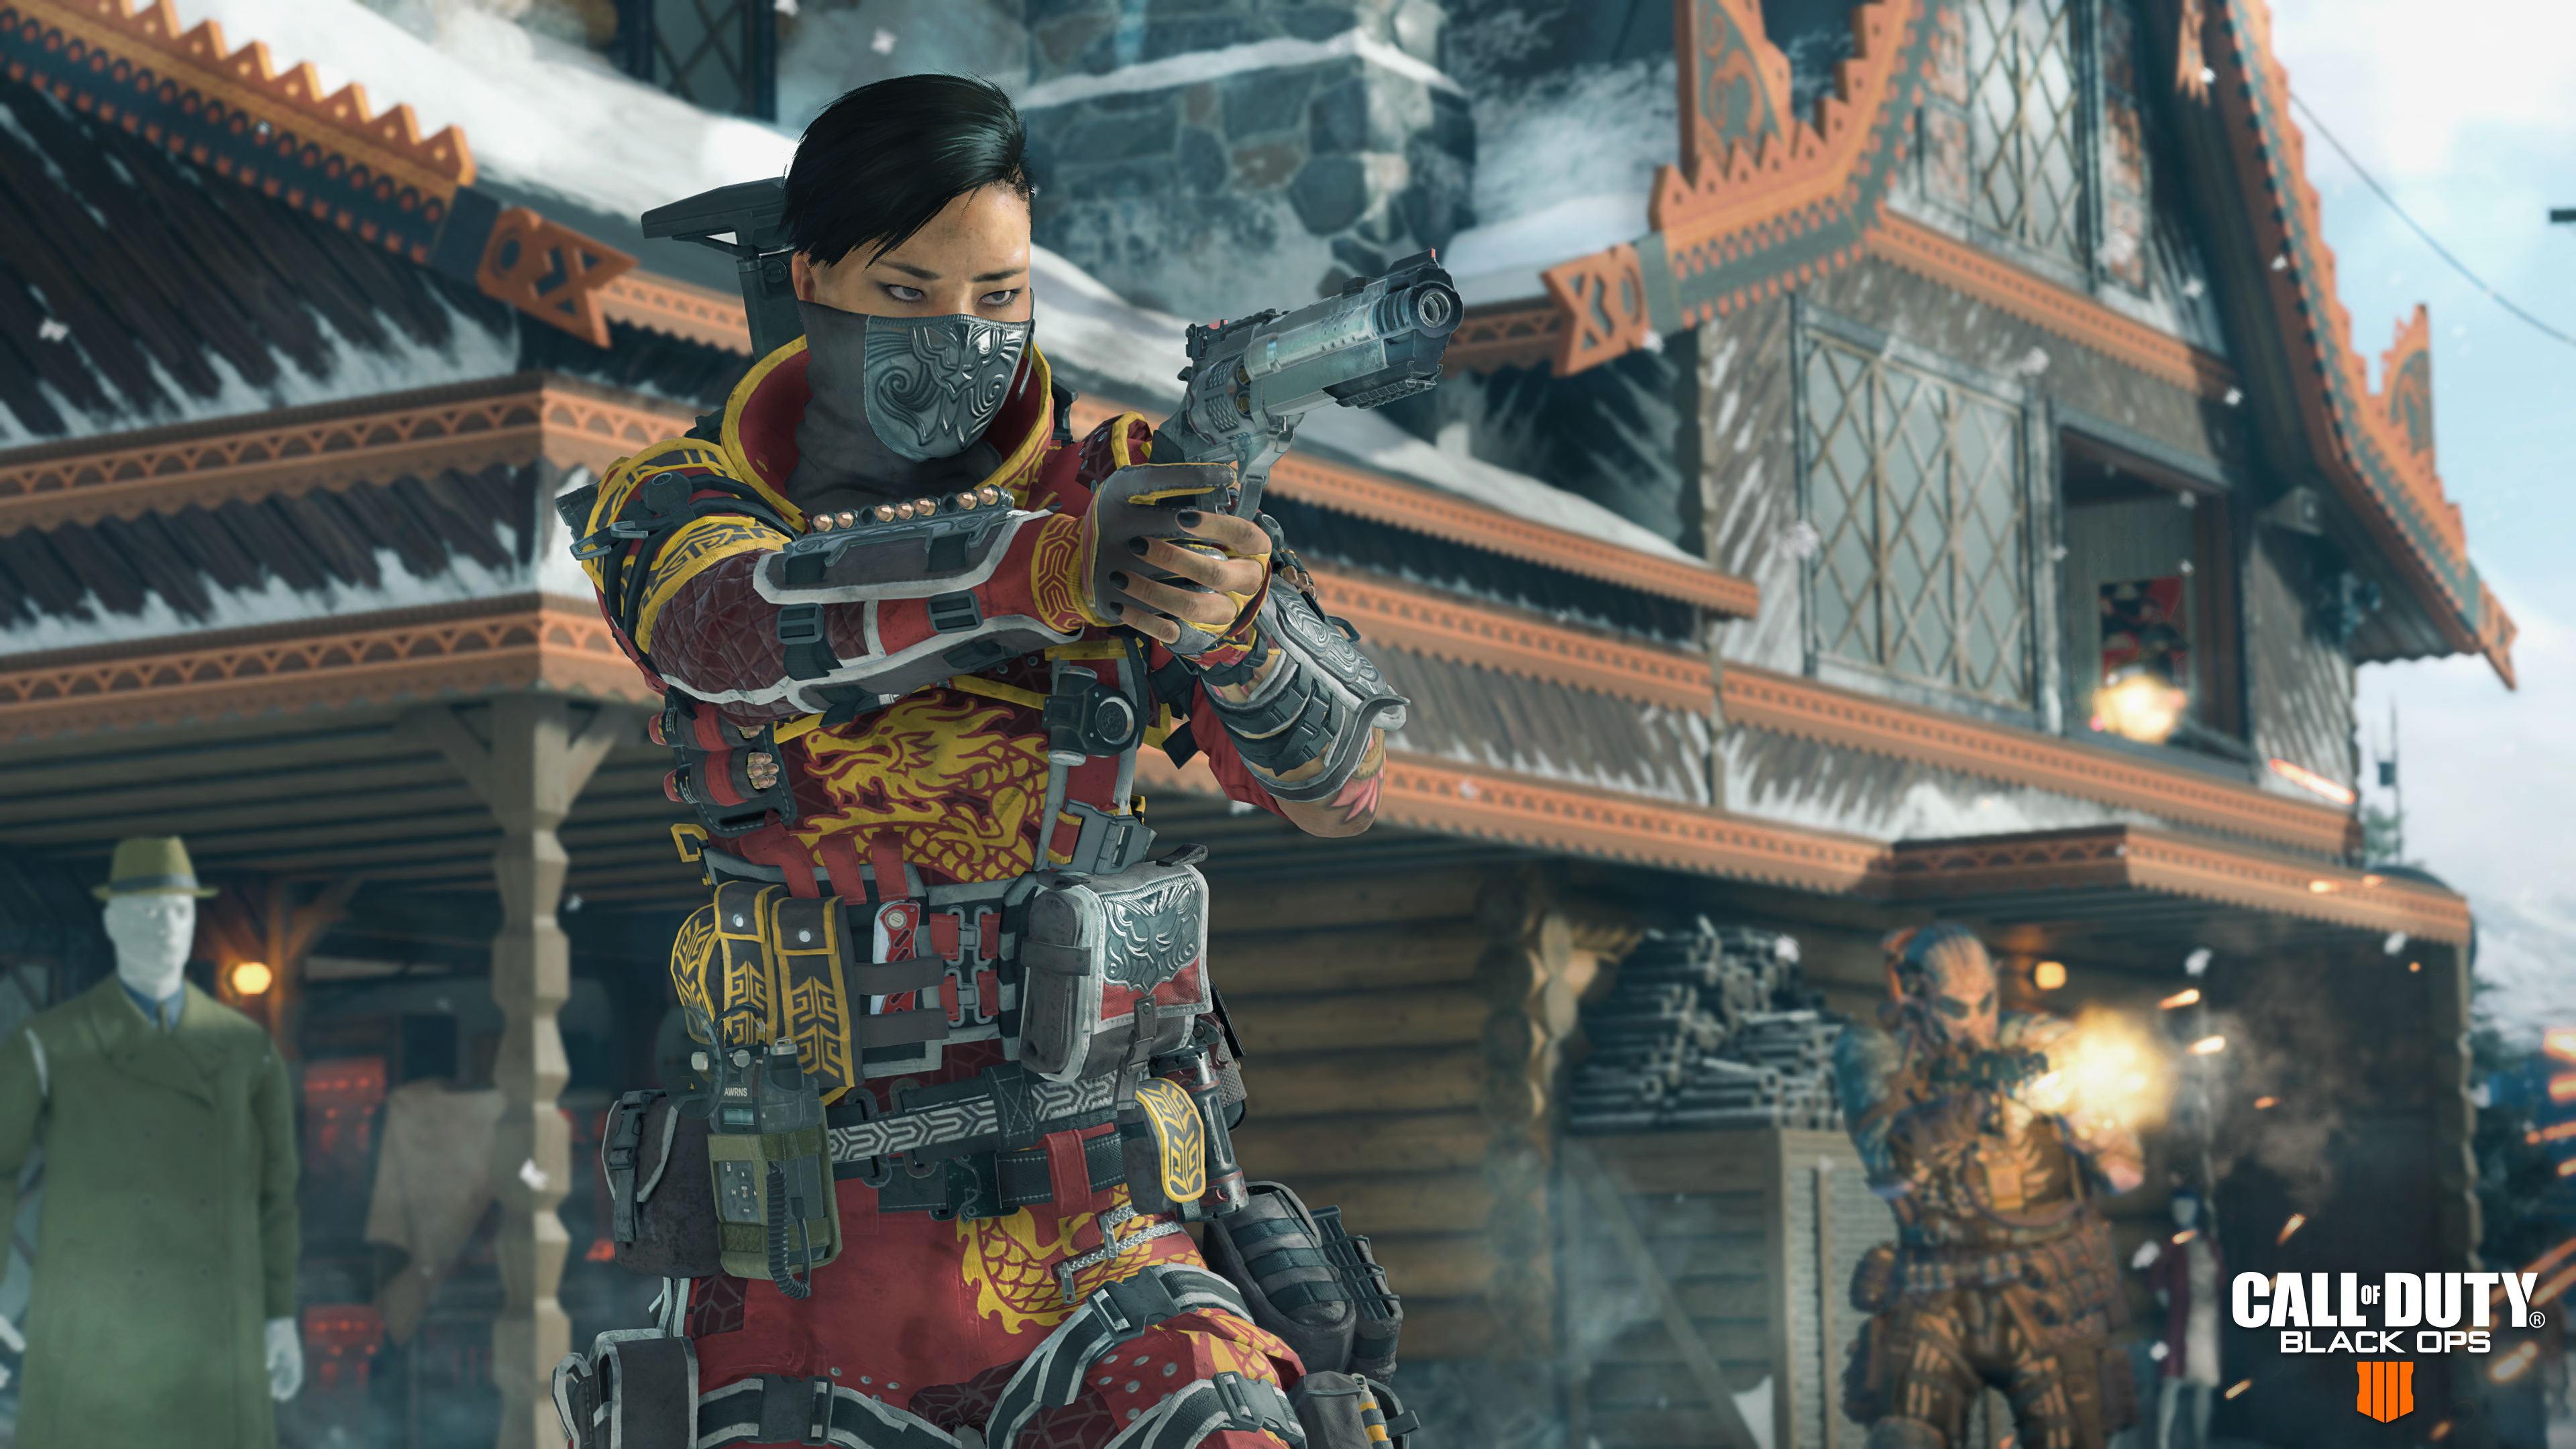 Double Xp And New Game Mode Coming To Black Ops 4 This Friday